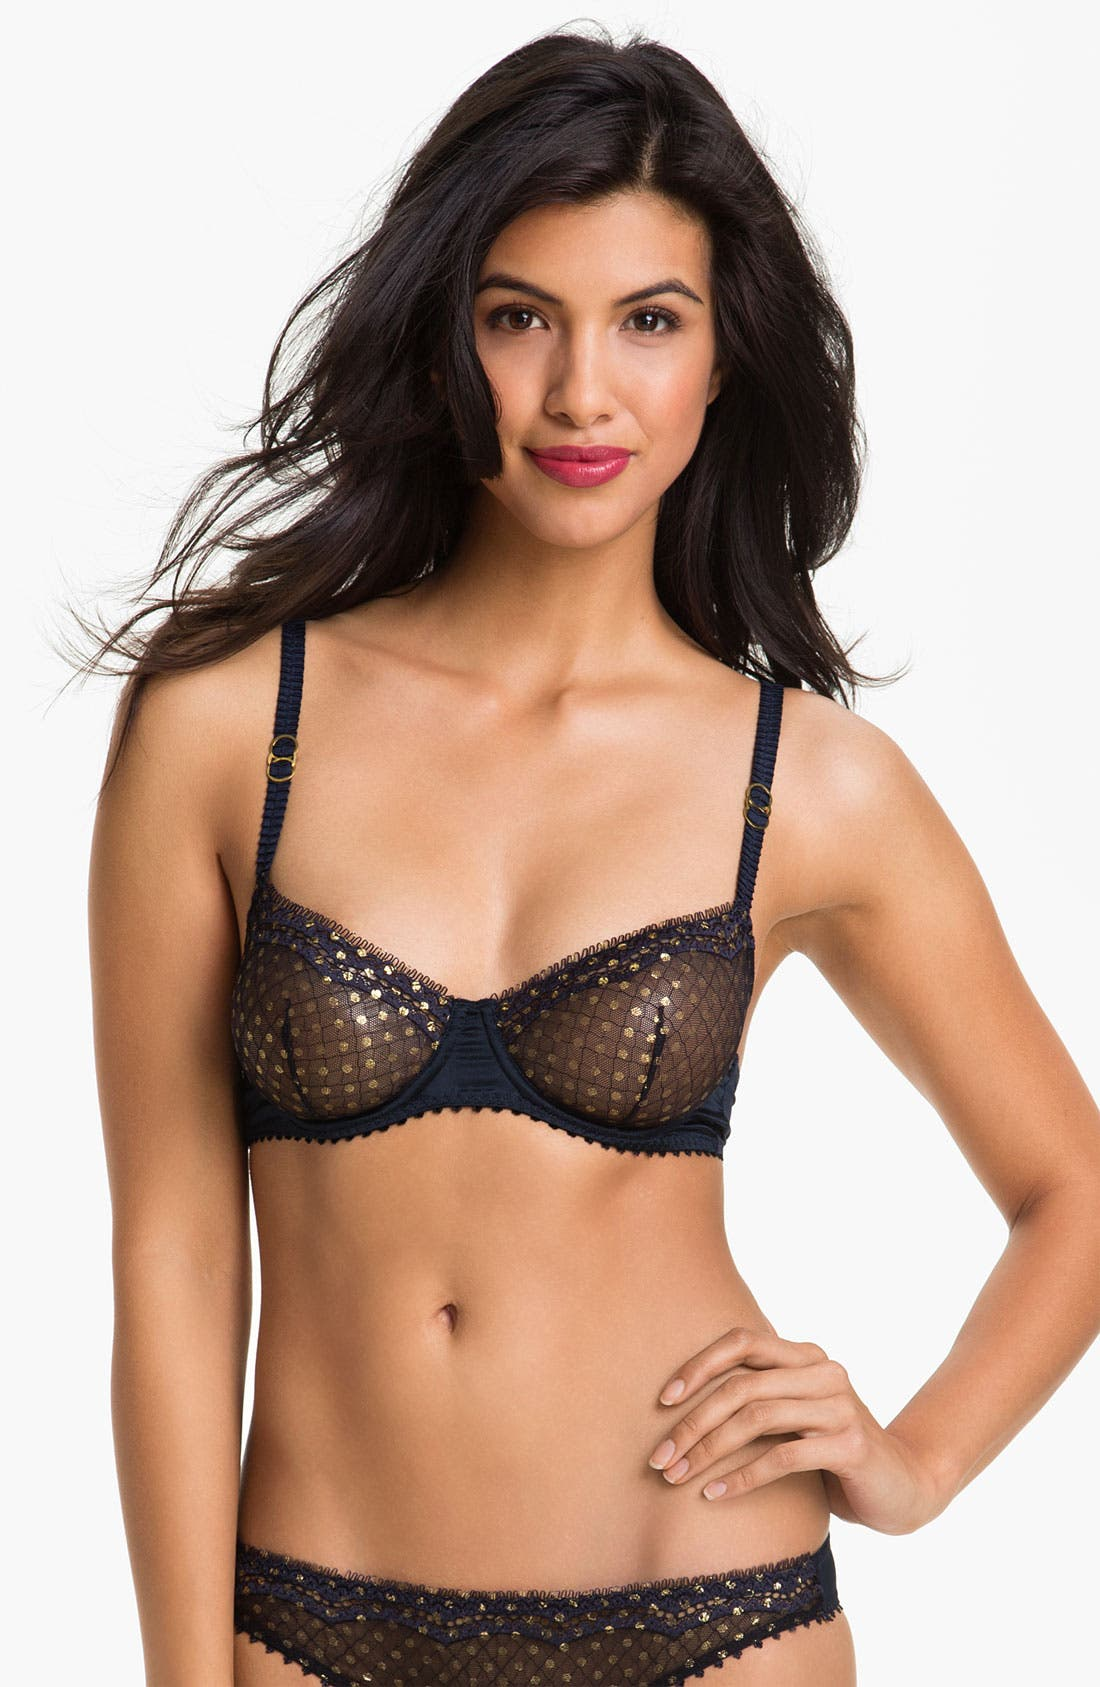 Main Image - Stella McCartney 'Emile Peeking' Underwire Balconette Bra